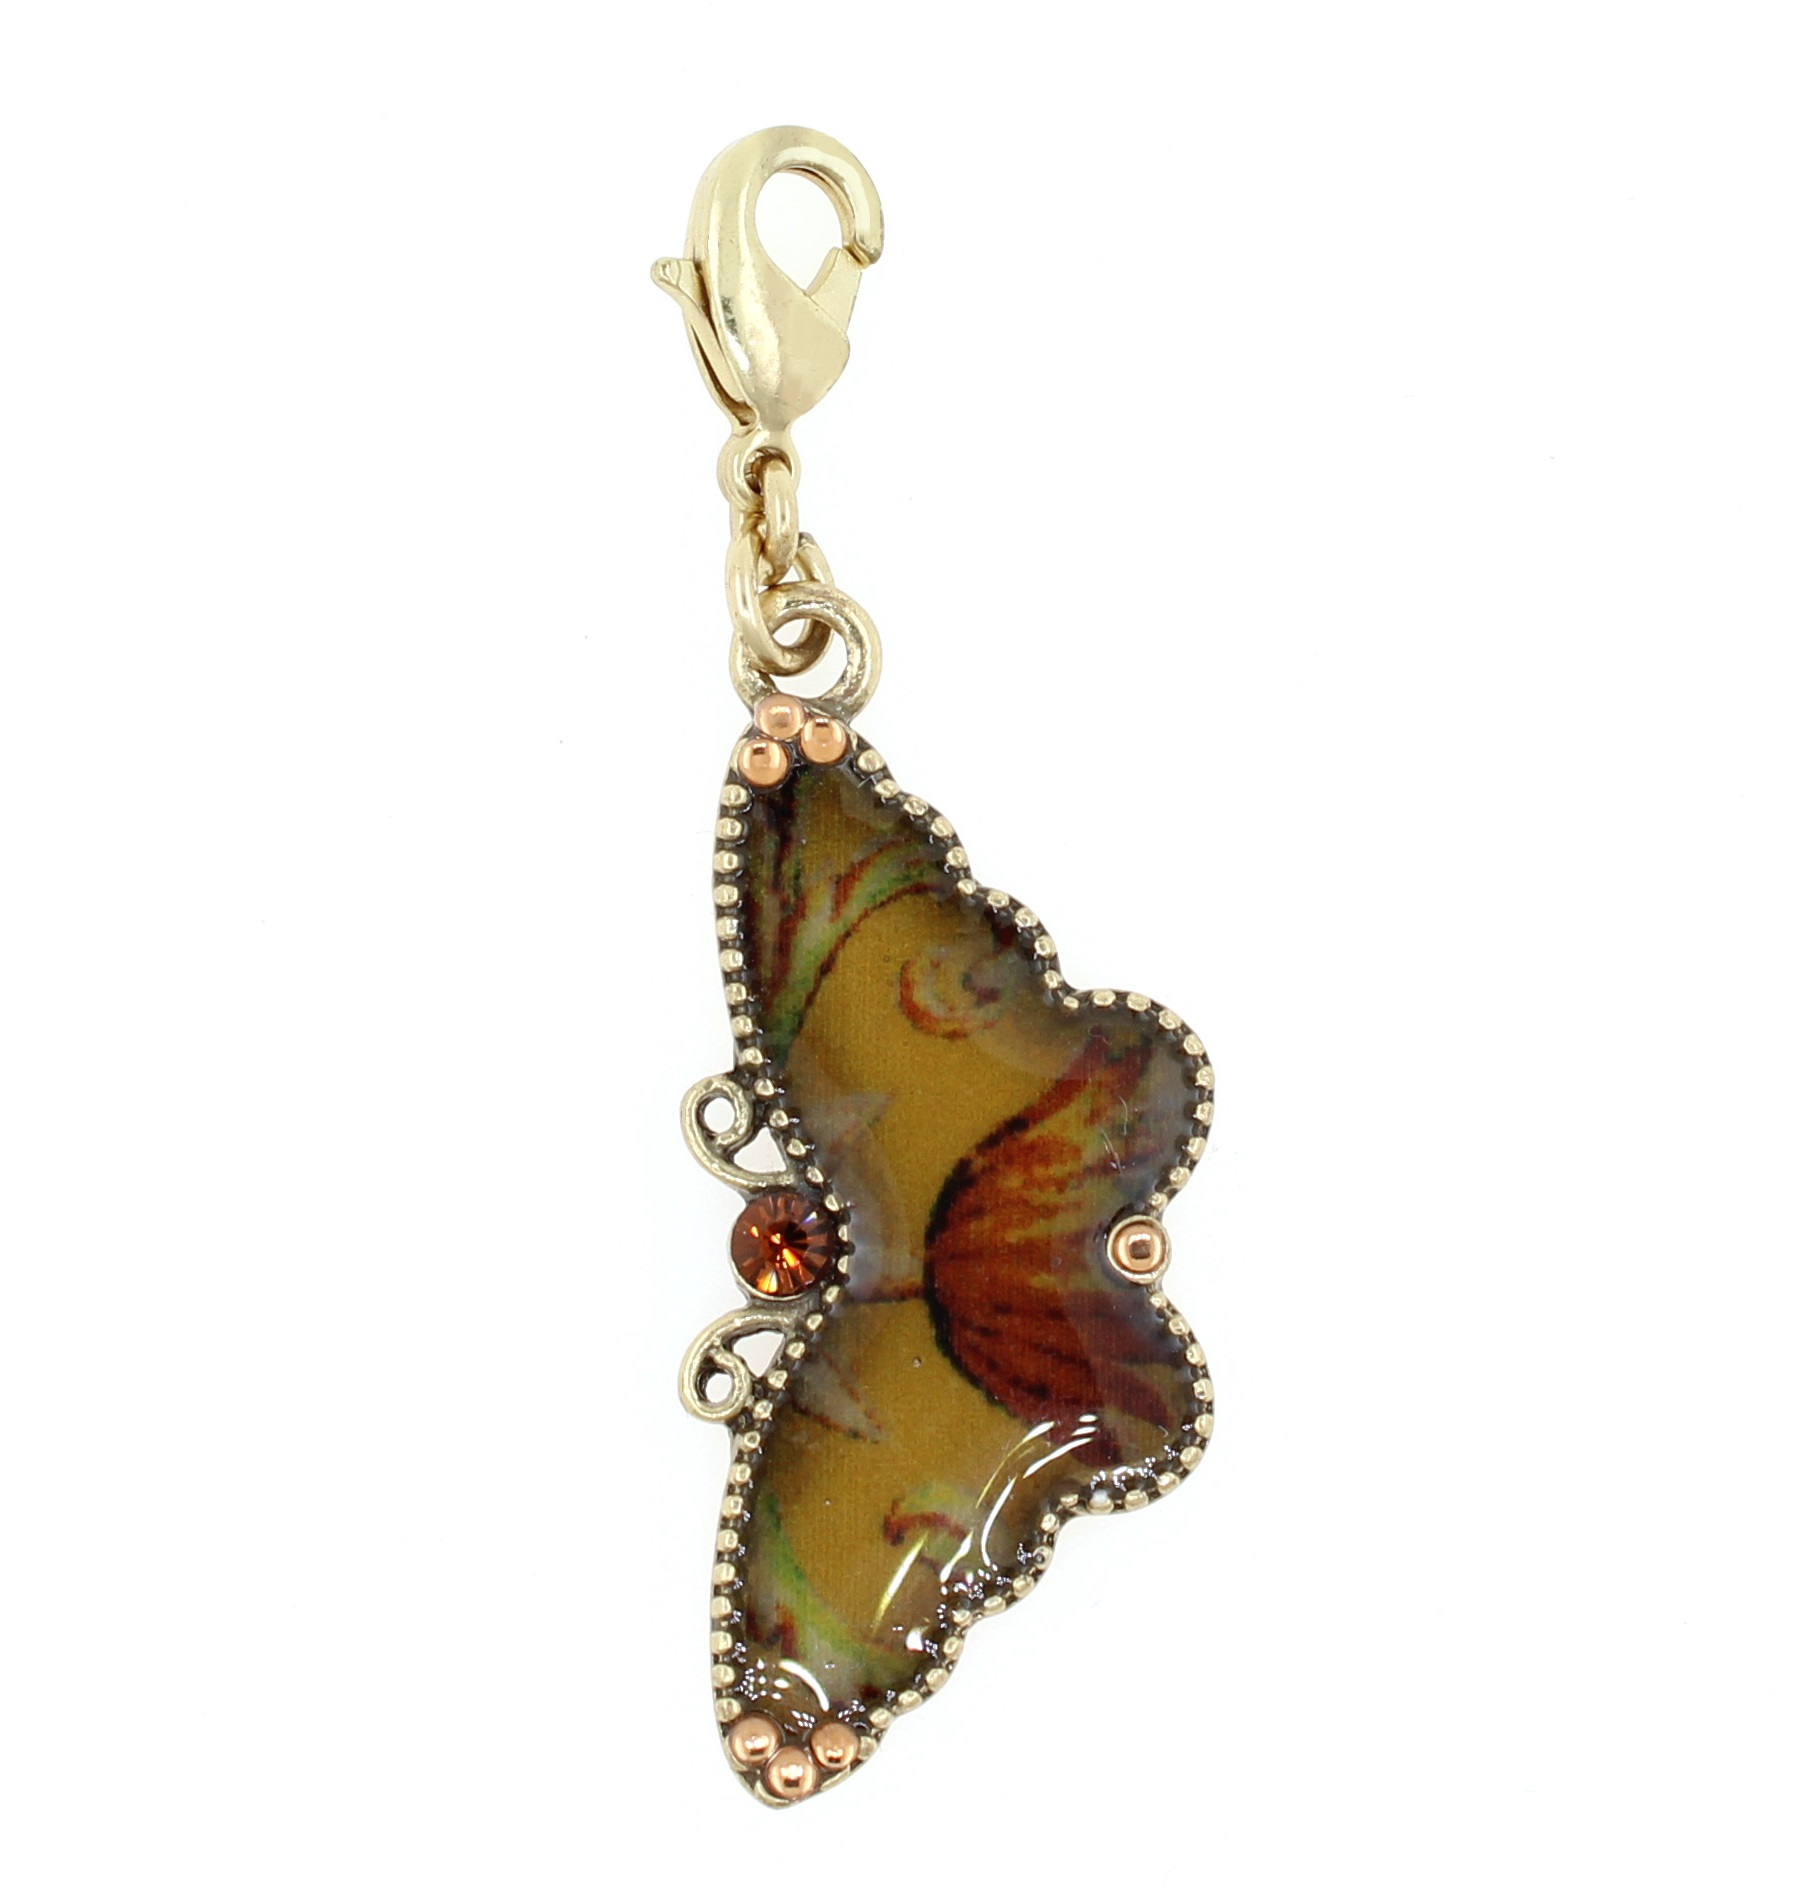 PILGRIM - Butterfly Charm - Shades of Brown/Gold - BNWT